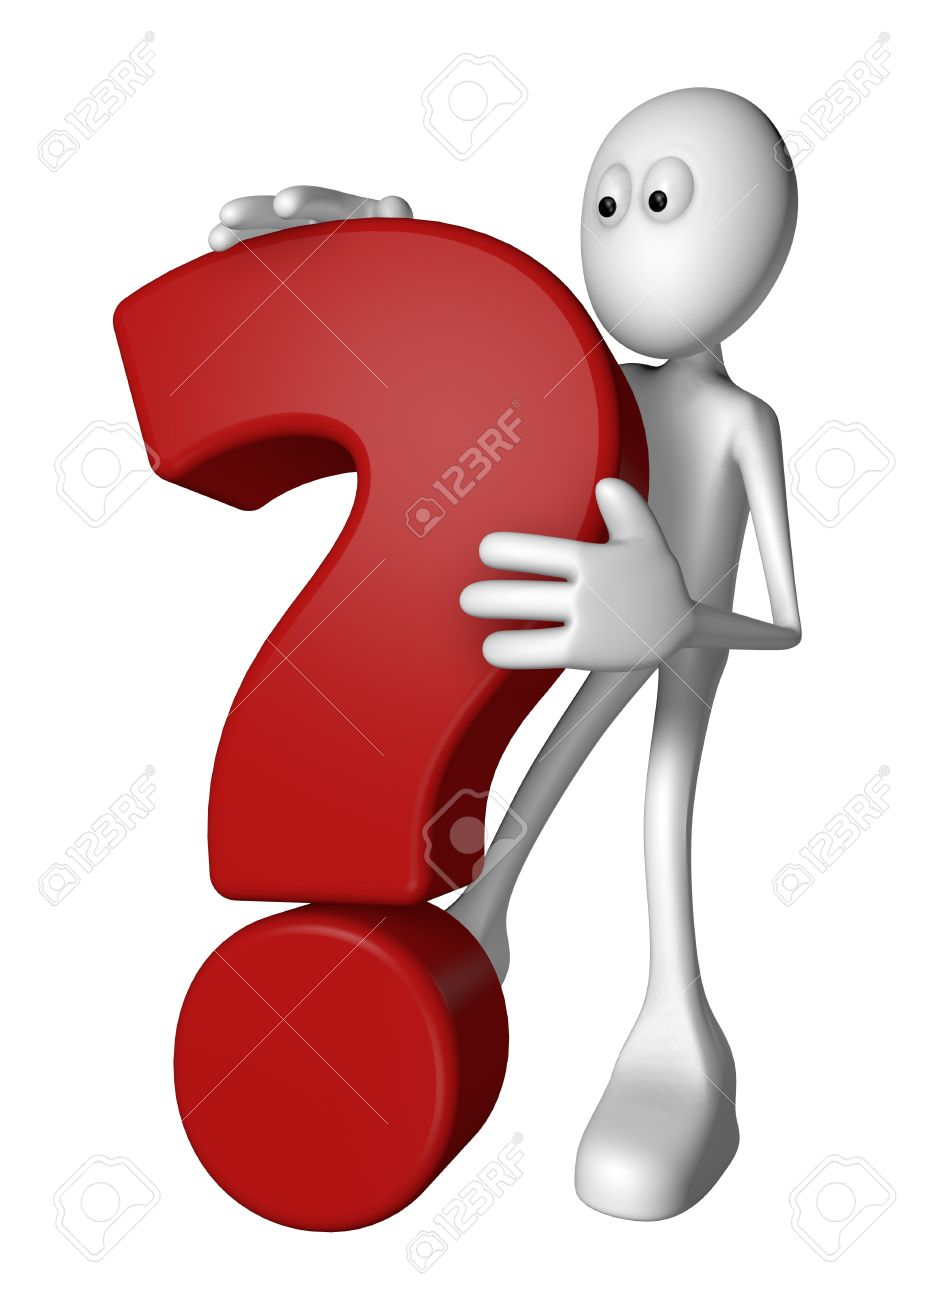 white guy and question mark - 3d illustration Stock Photo - 13219196